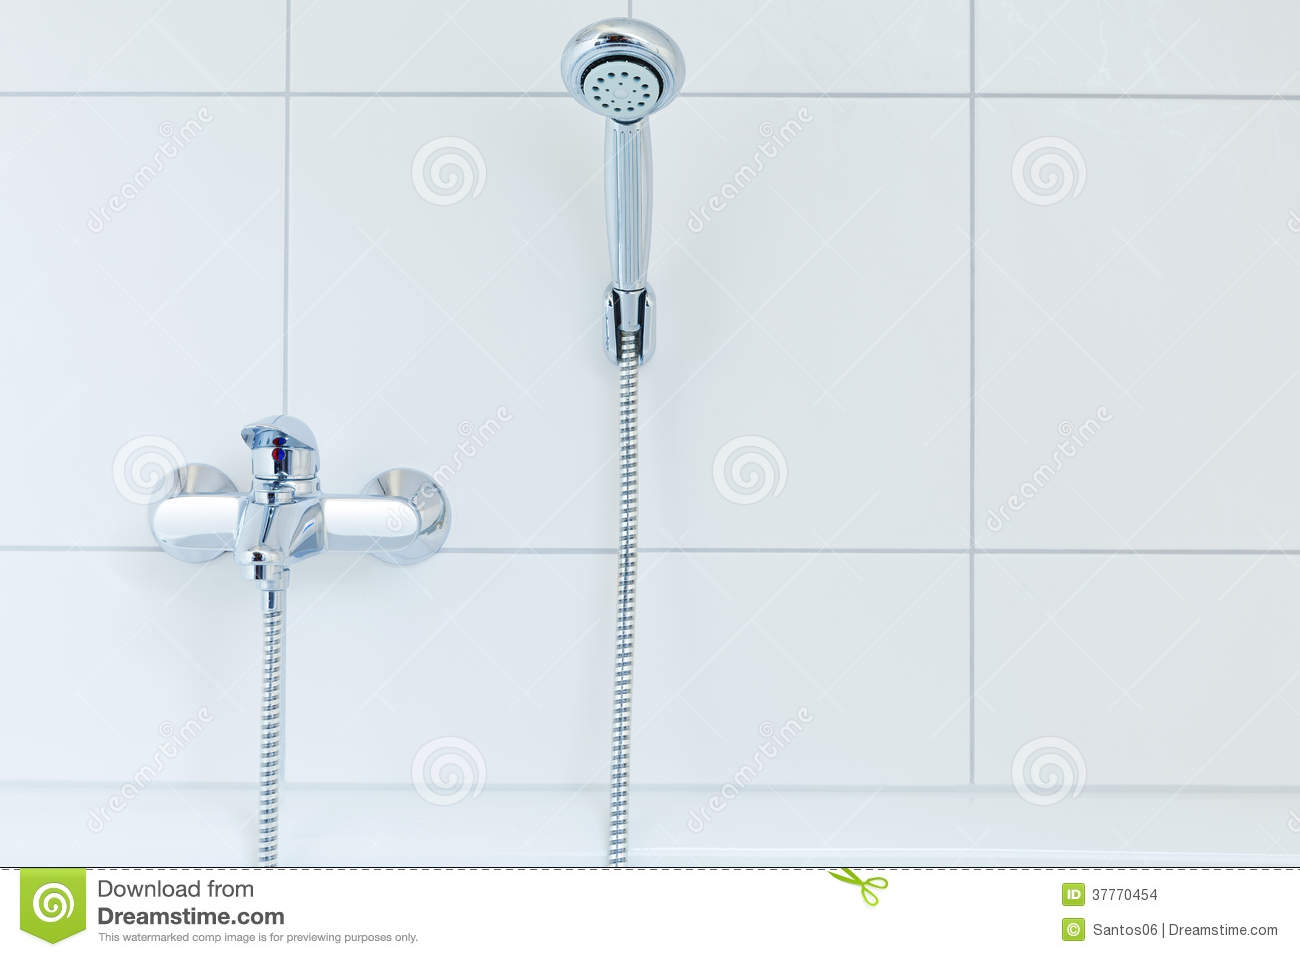 Mixer tap and shower head stock photo. Image of head - 37770454